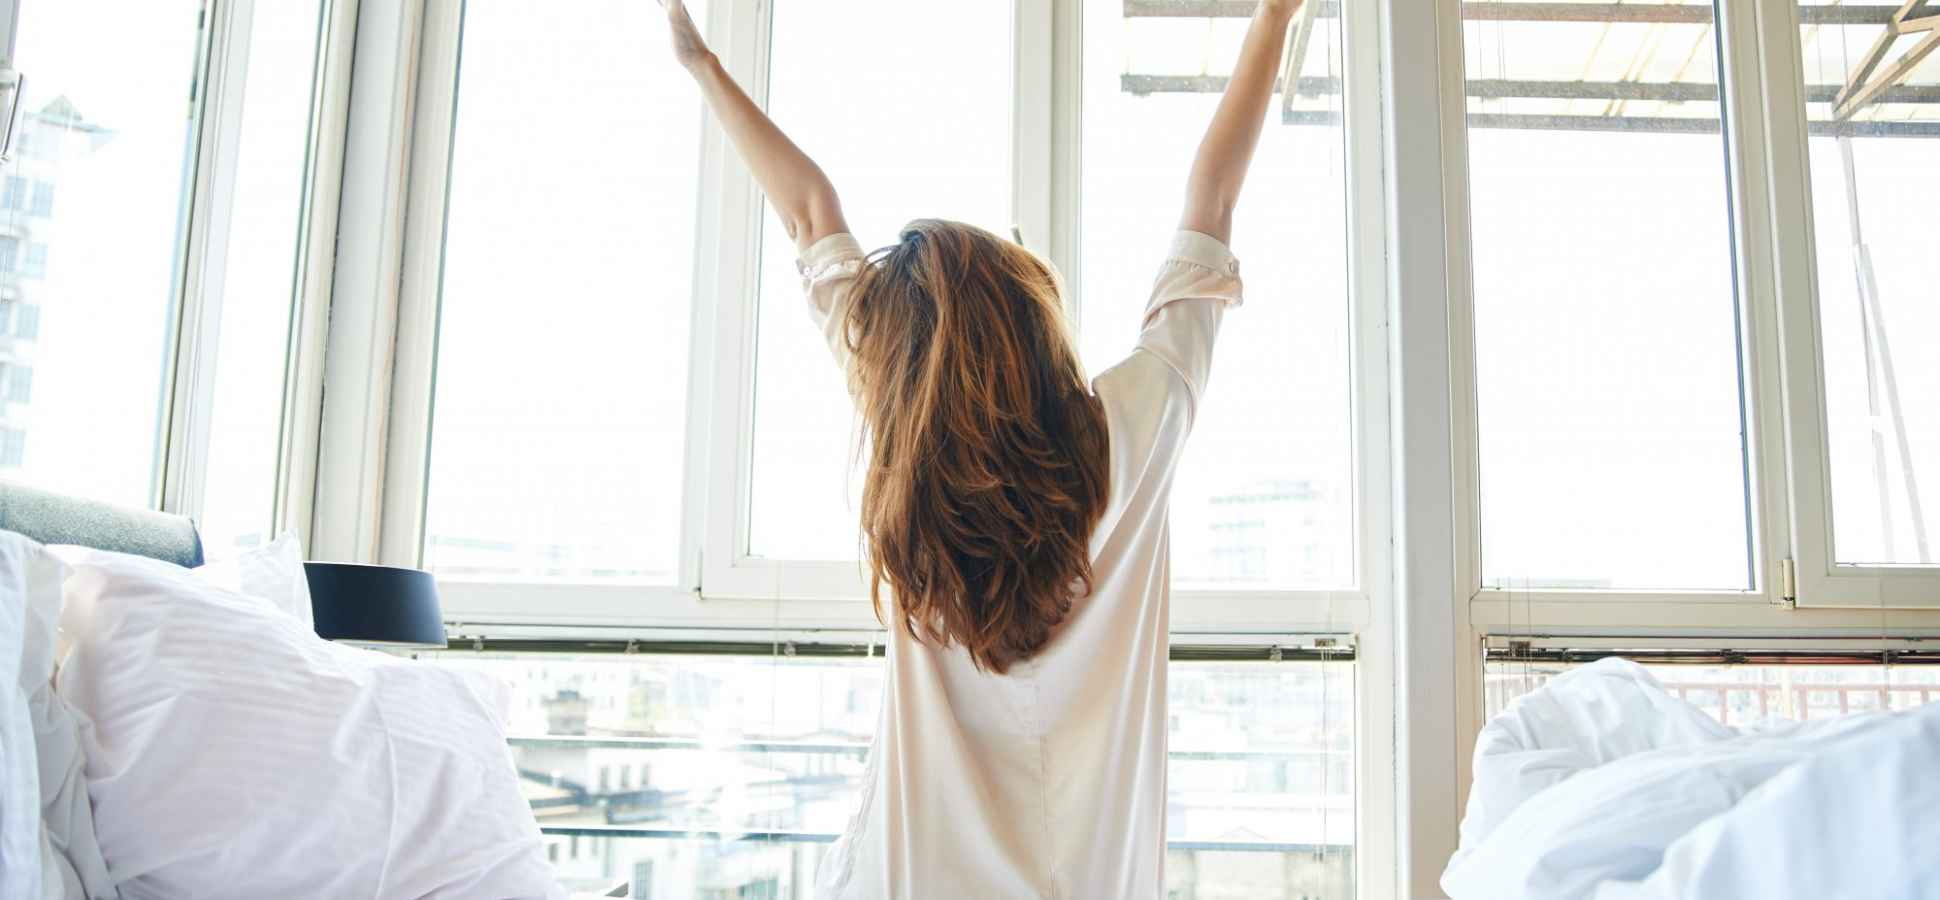 Why You Should Avoid Waking Up at 5 A.M. Every Day